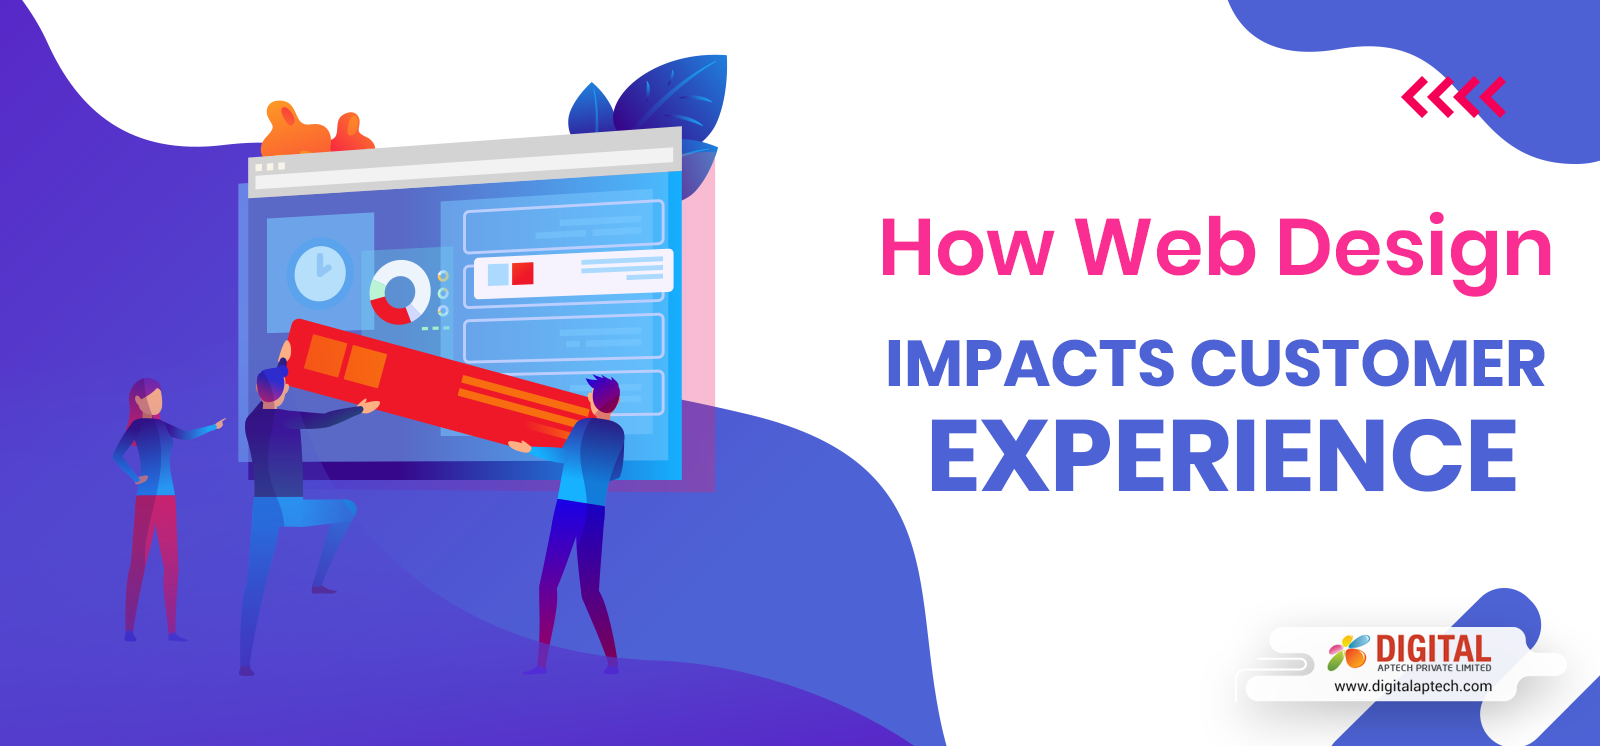 How Web Design Impacts Customer Experience